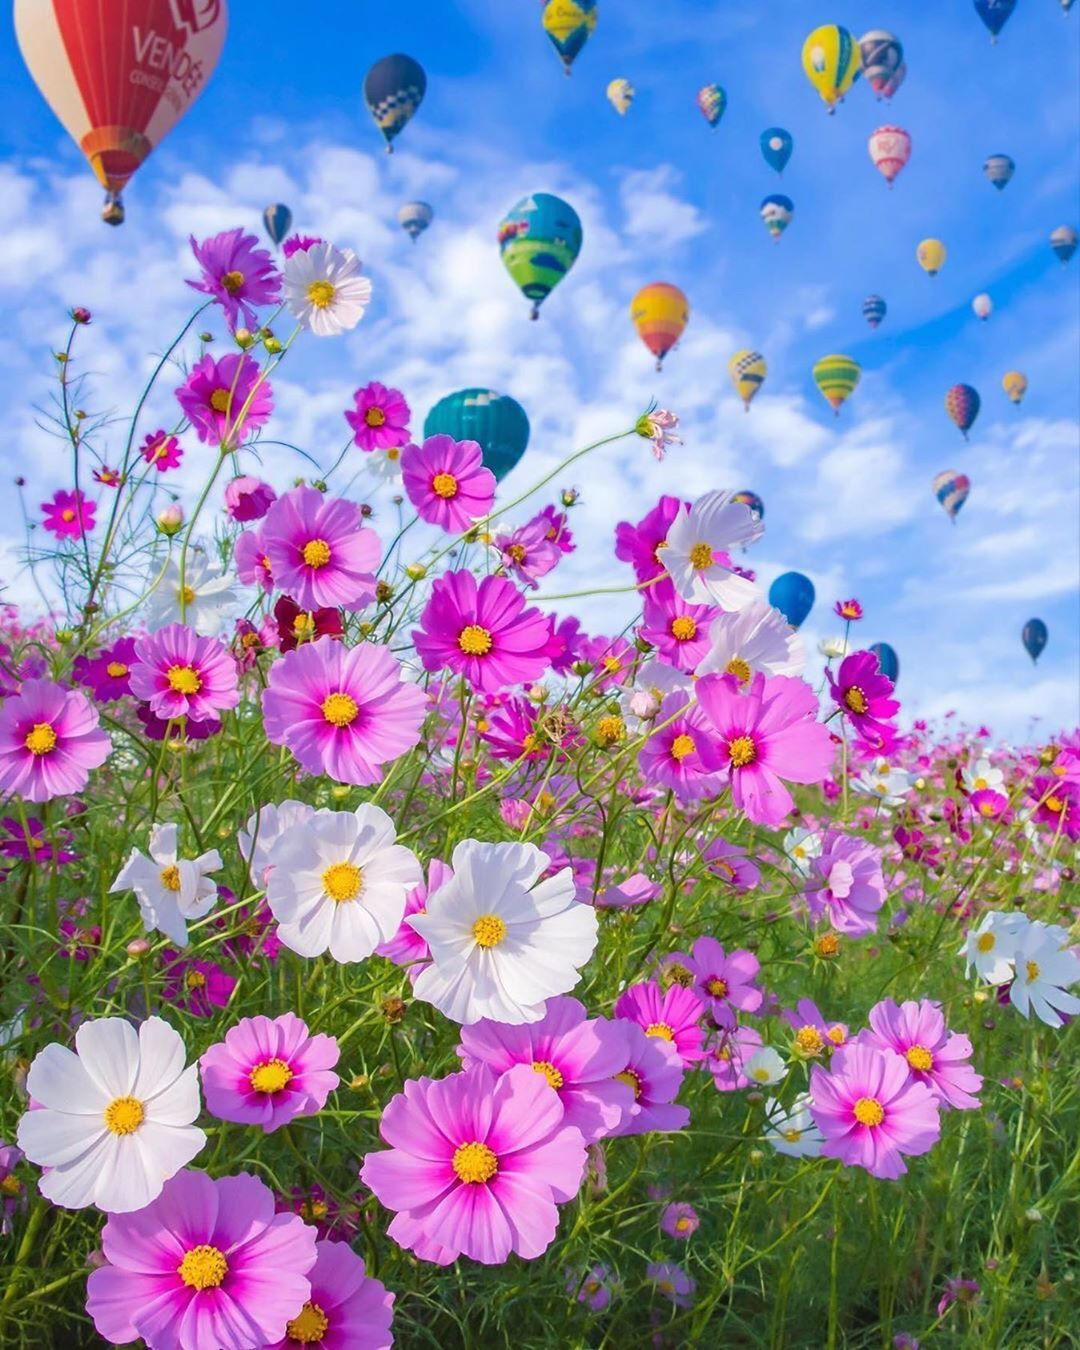 Best Pictures Gallery On Instagram Picture Of The Day Astrailor Jp Congratulations In 2020 Flower Pictures Flowers Beautiful Flowers